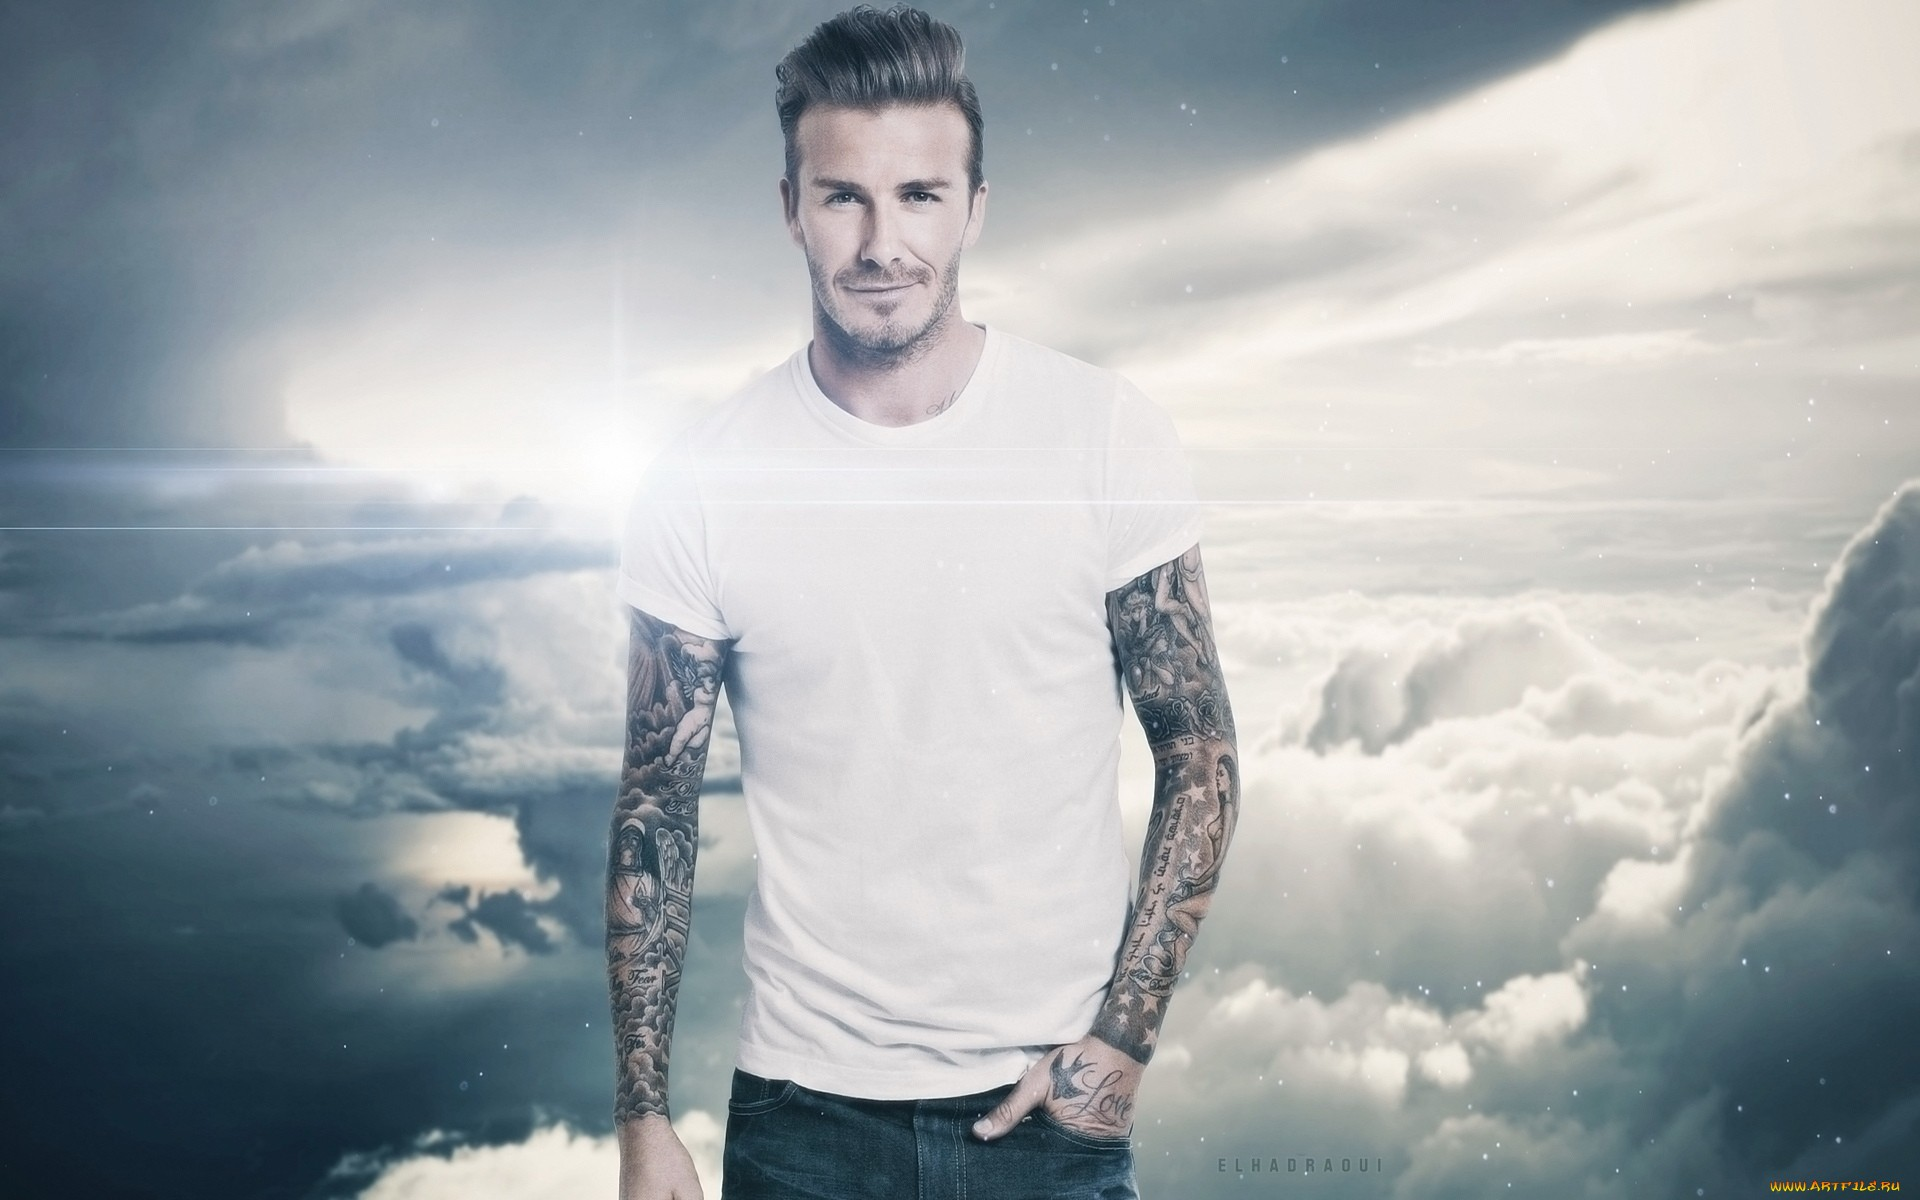 David Beckham Wallpapers High Resolution and Quality Download 1920x1200